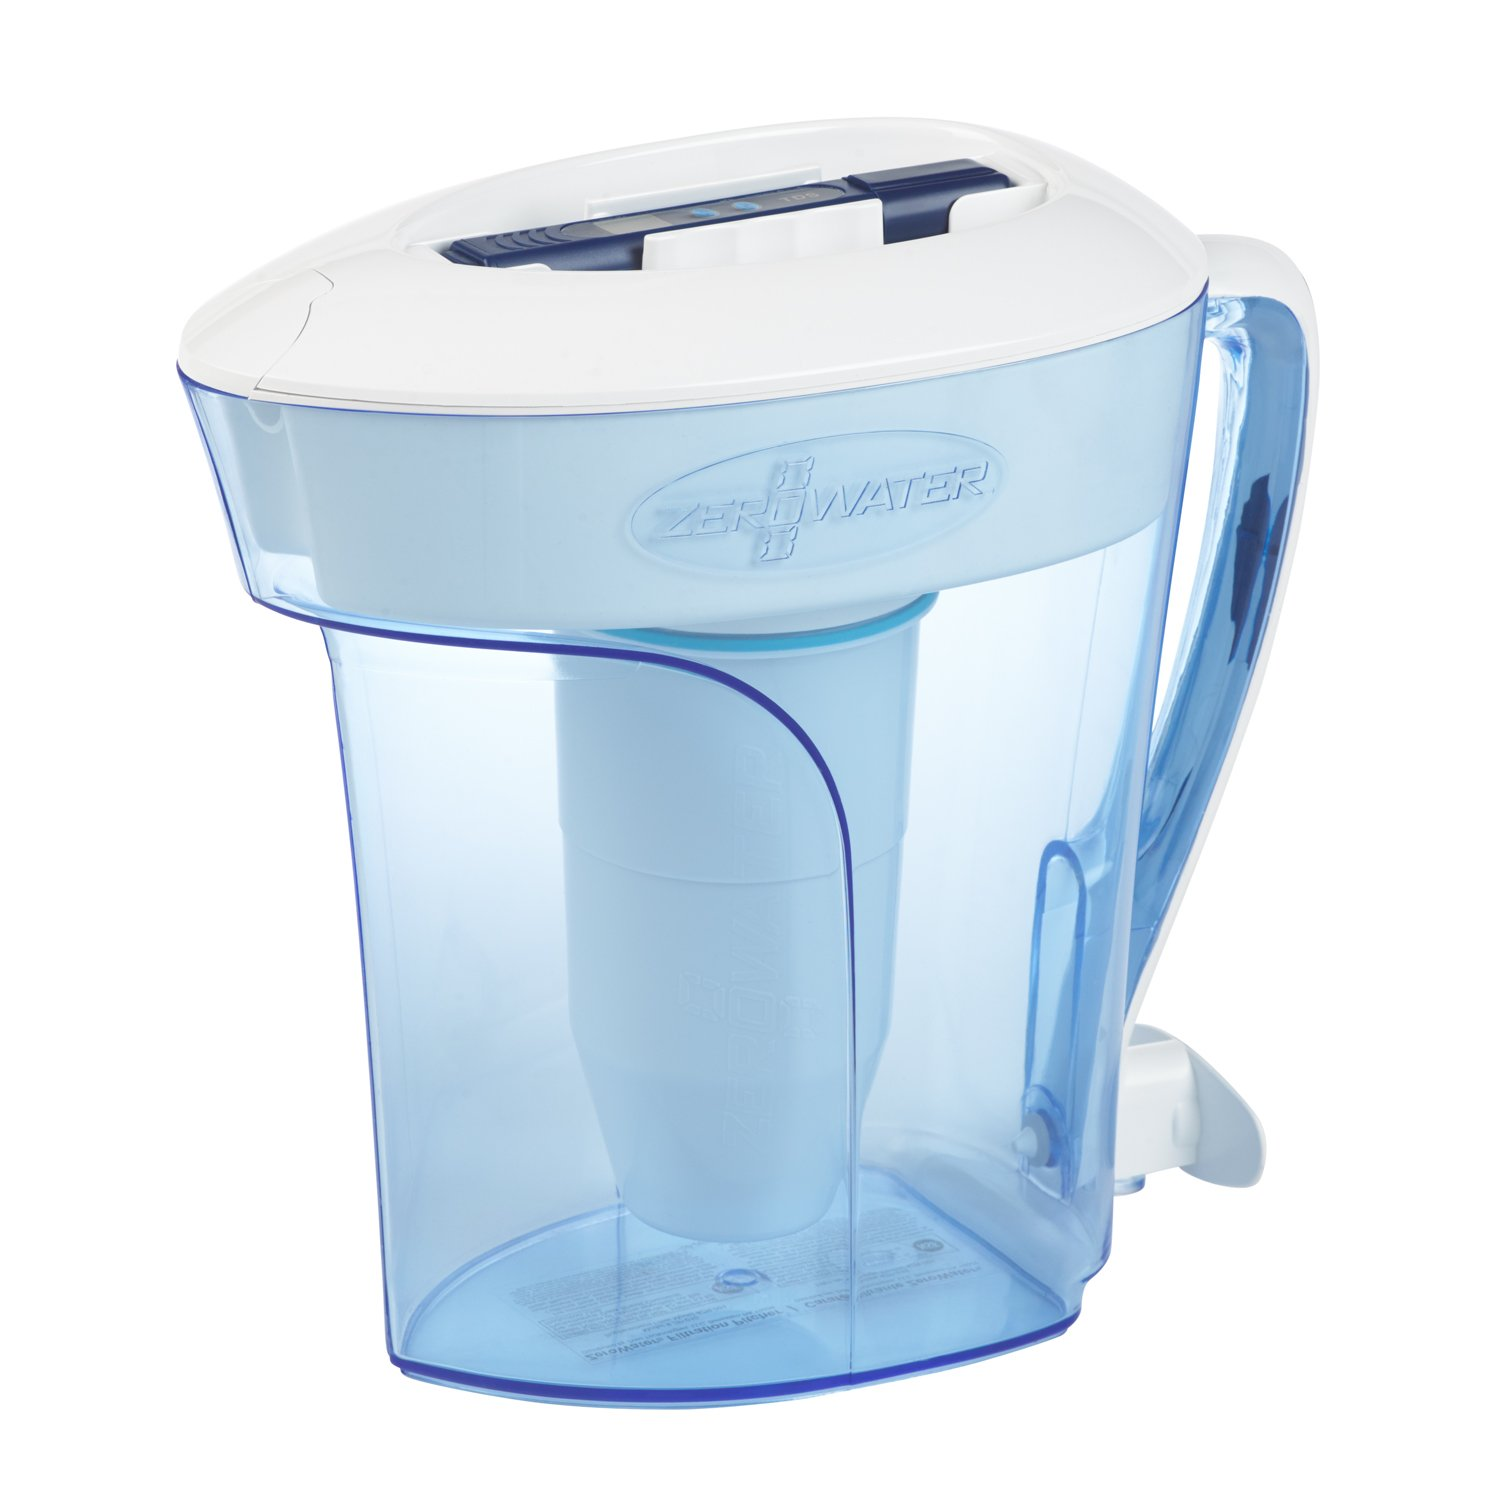 Amazon.com: ZeroWater 10 Cup Pitcher with Free Water Quality Meter ...